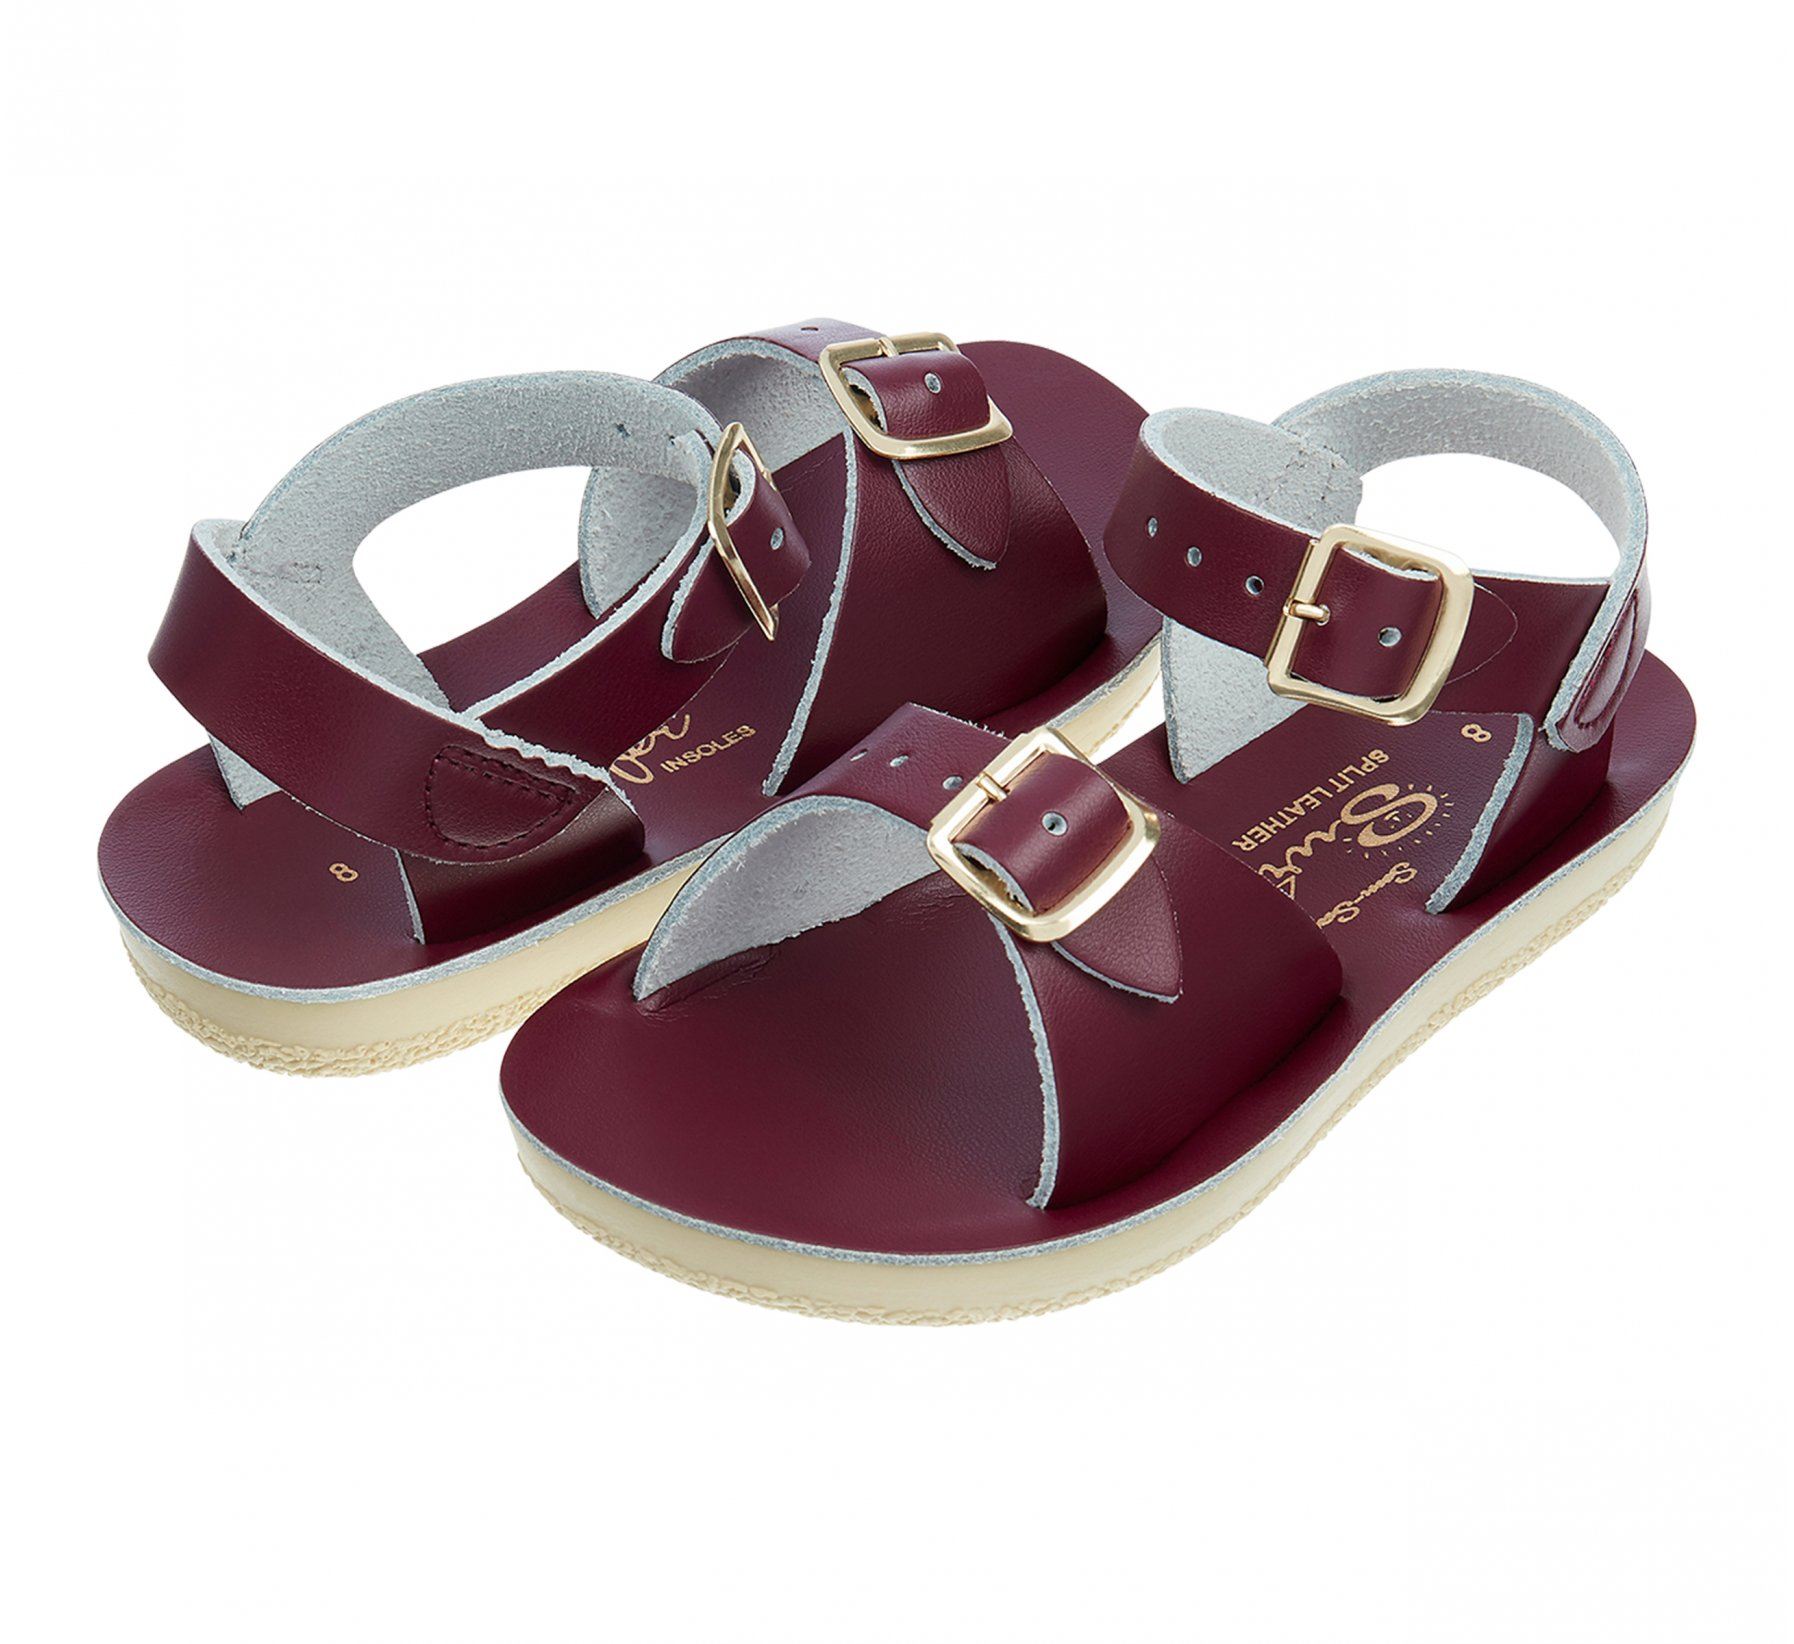 Surfer Claret  - Salt Water Sandals